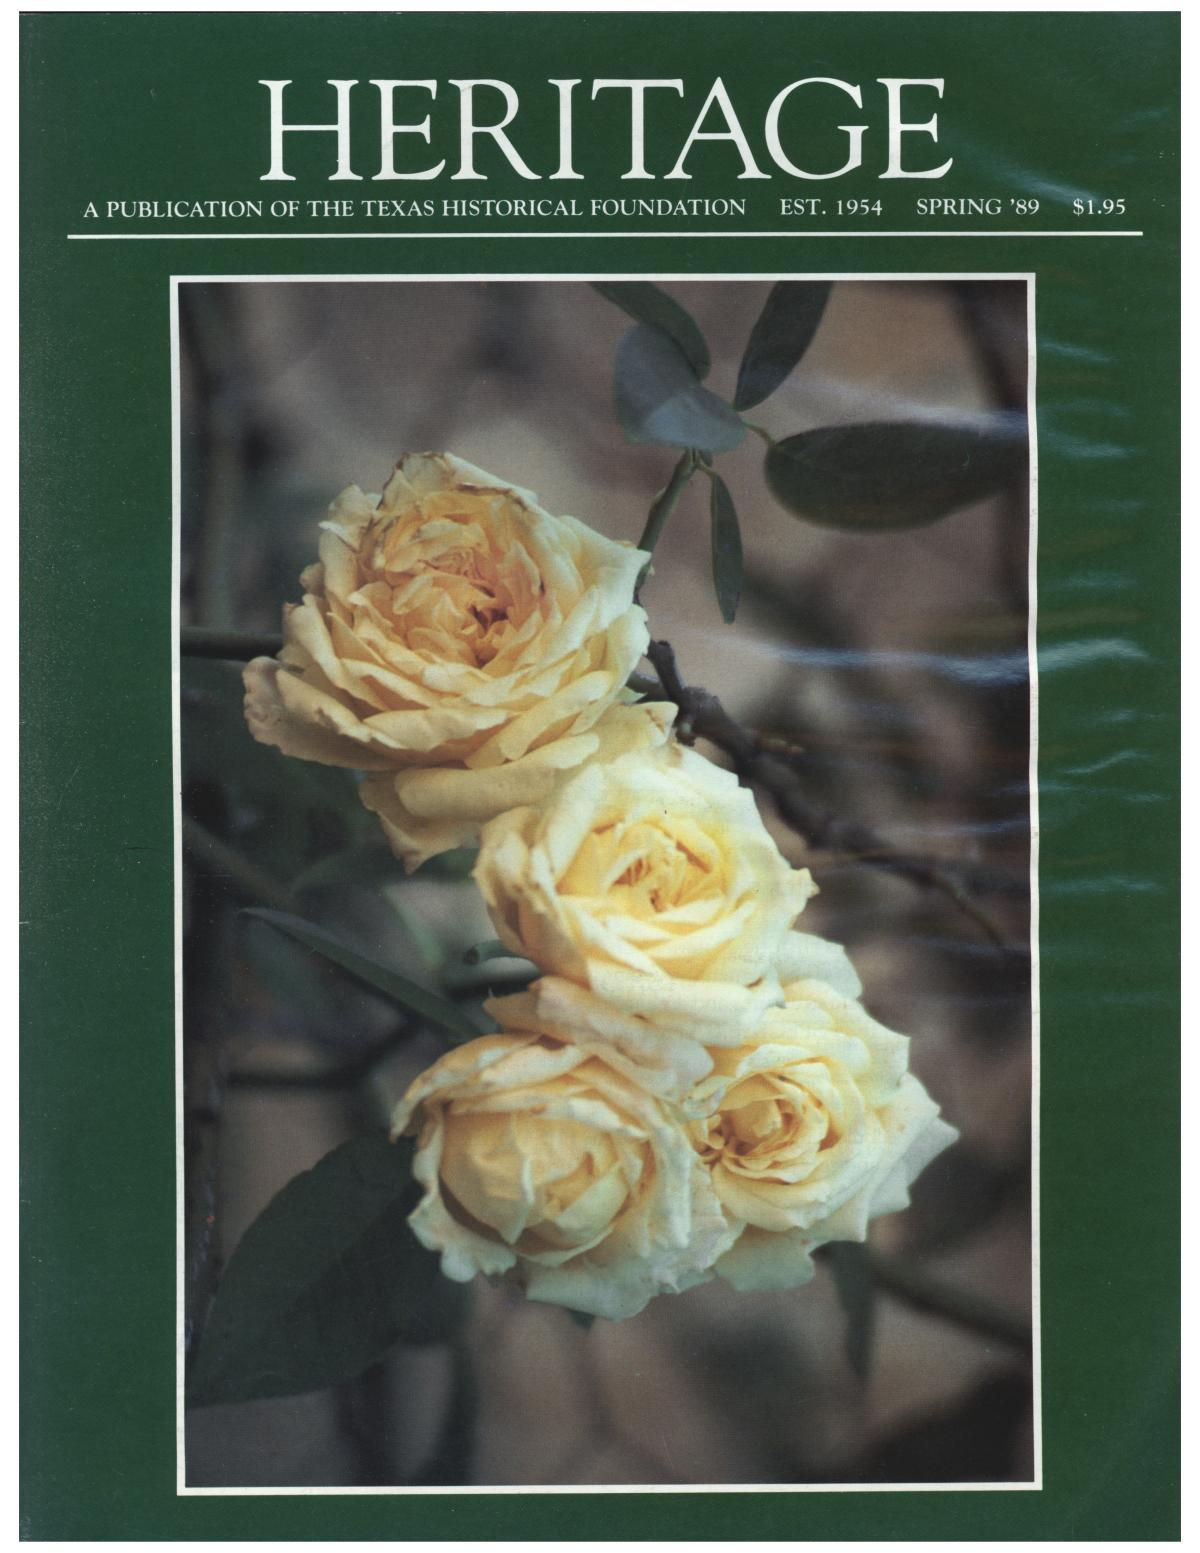 Heritage, Volume 7, Number 2, Spring 1989                                                                                                      Front Cover